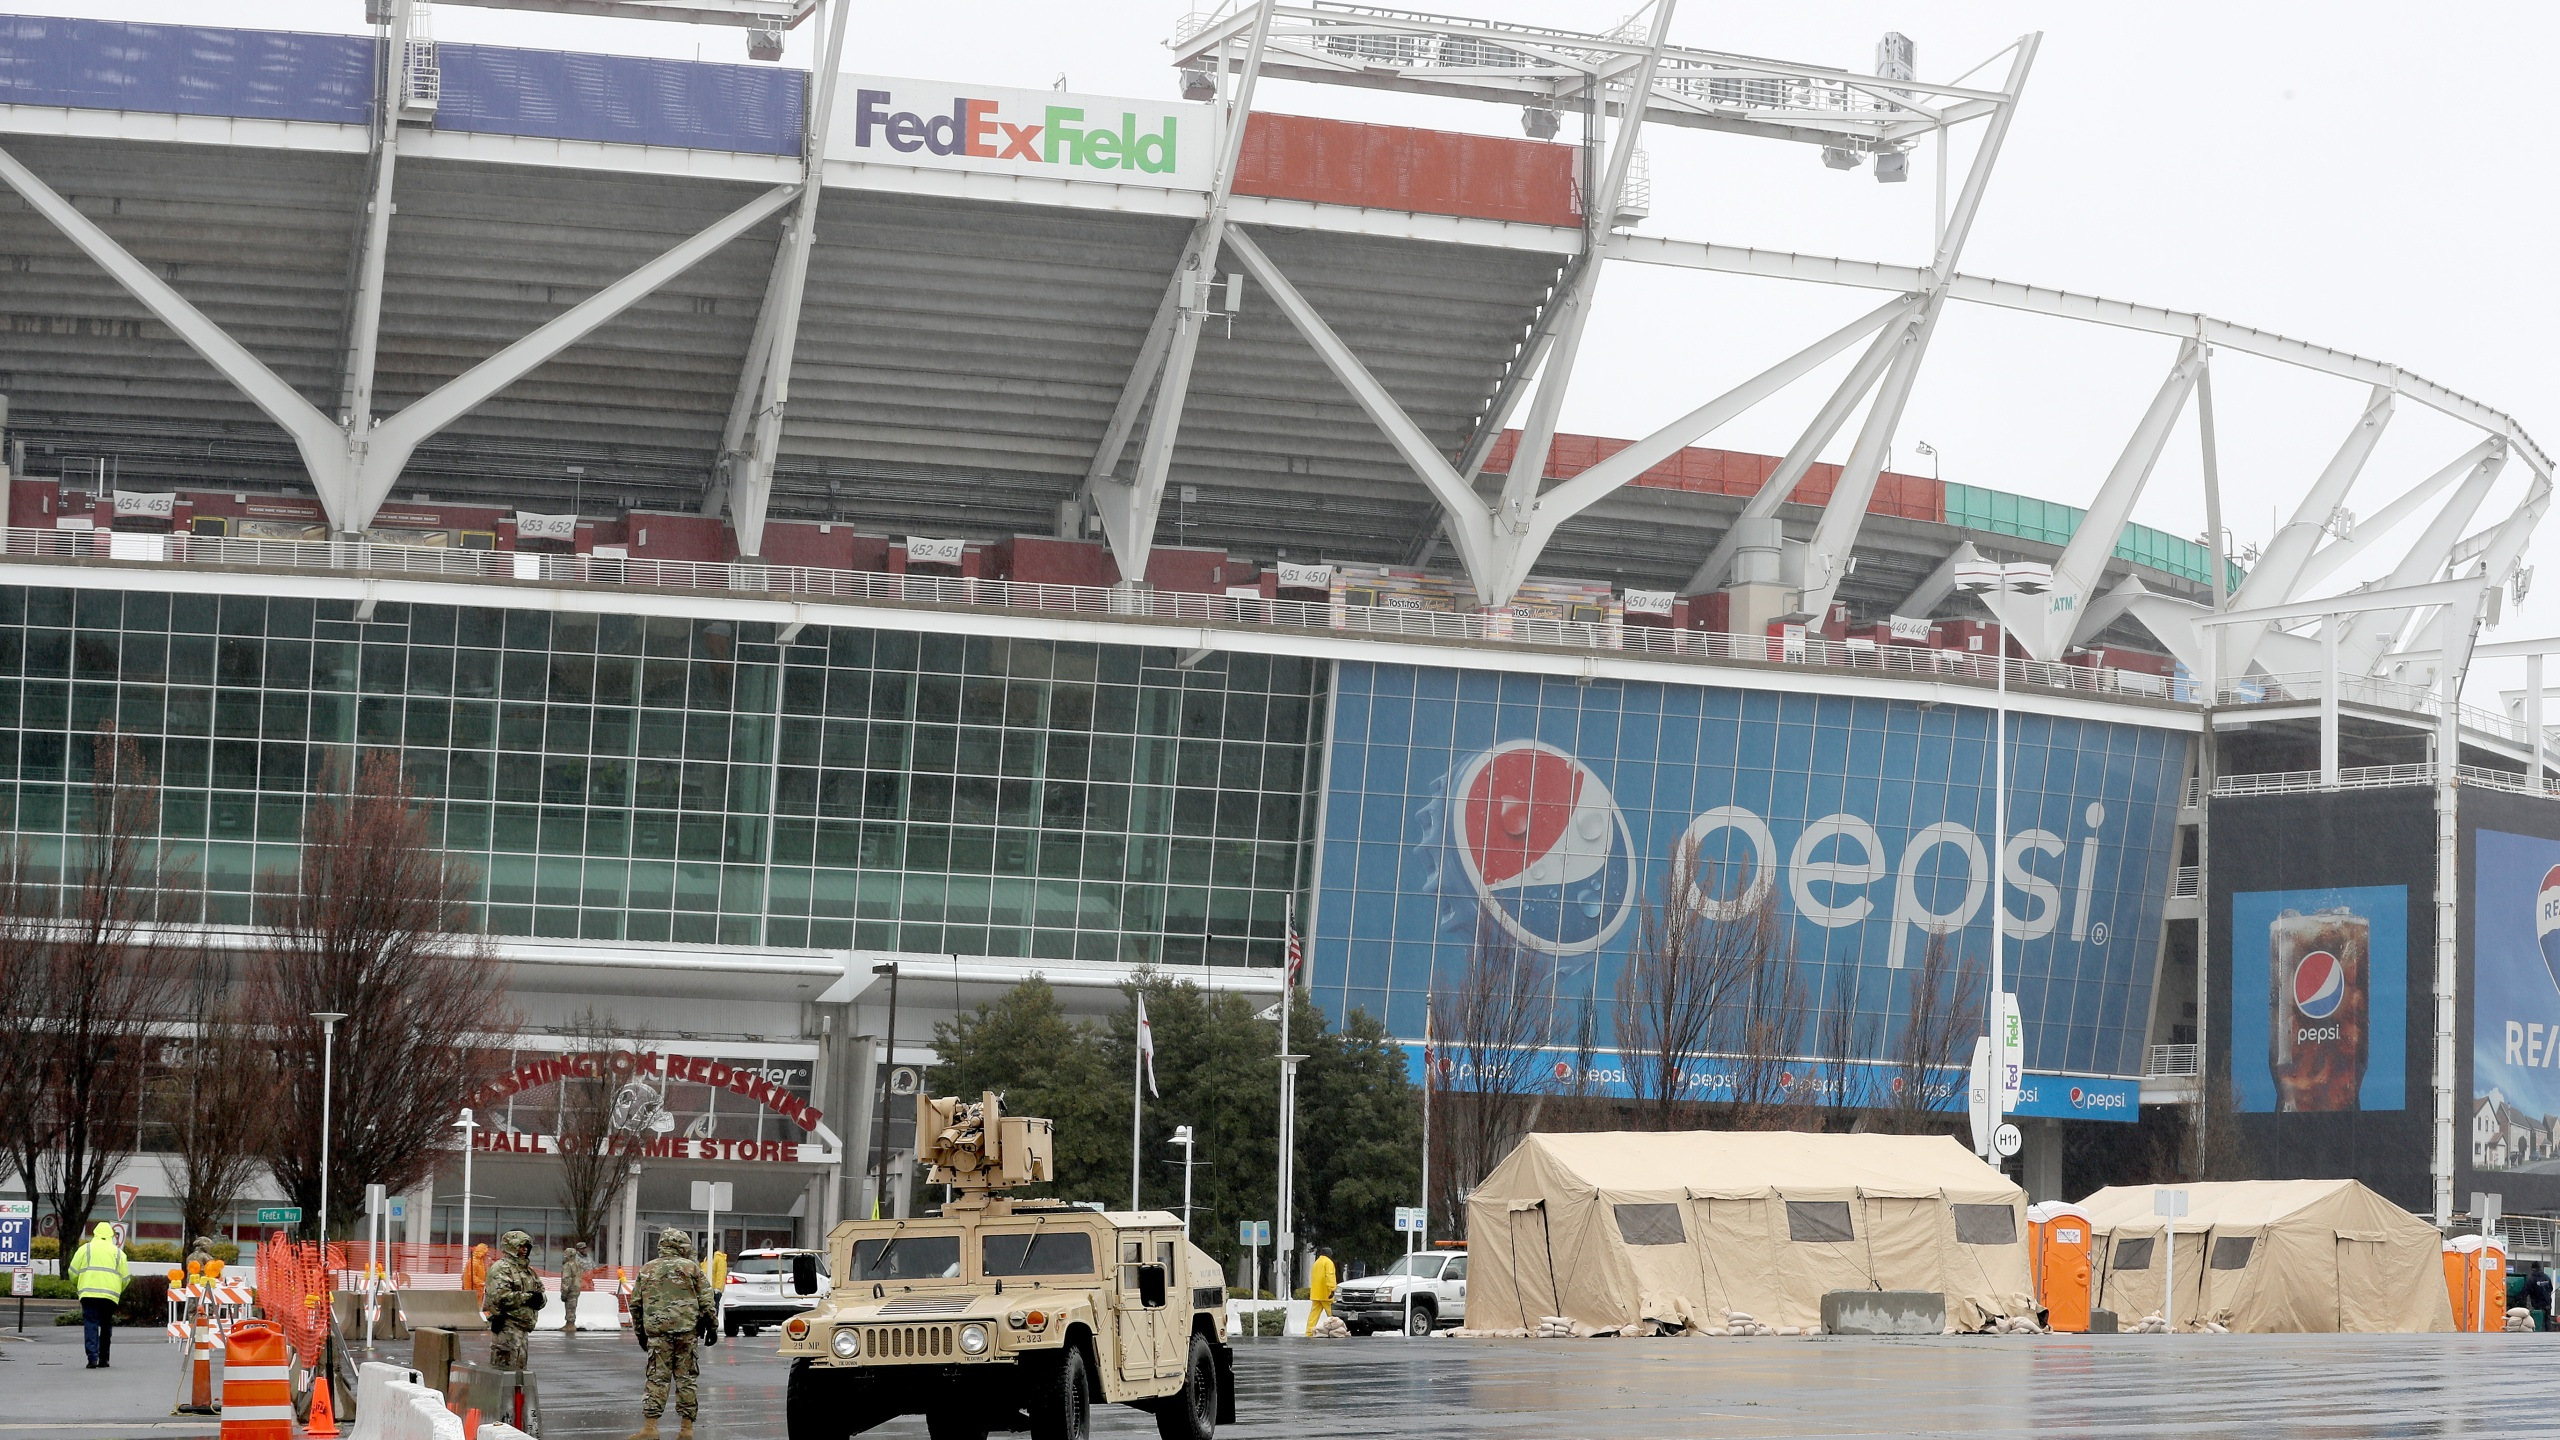 Tents, vehicles and other equipment from the Maryland National Guard occupy a section of parking lot on the south side of FedEX Field, home of the Washington Redskins, that officials said will become a clinic for health screenings in response to the global coronavirus pandemic March 23, 2020 in Landover, Maryland. (Chip Somodevilla/Getty Images)